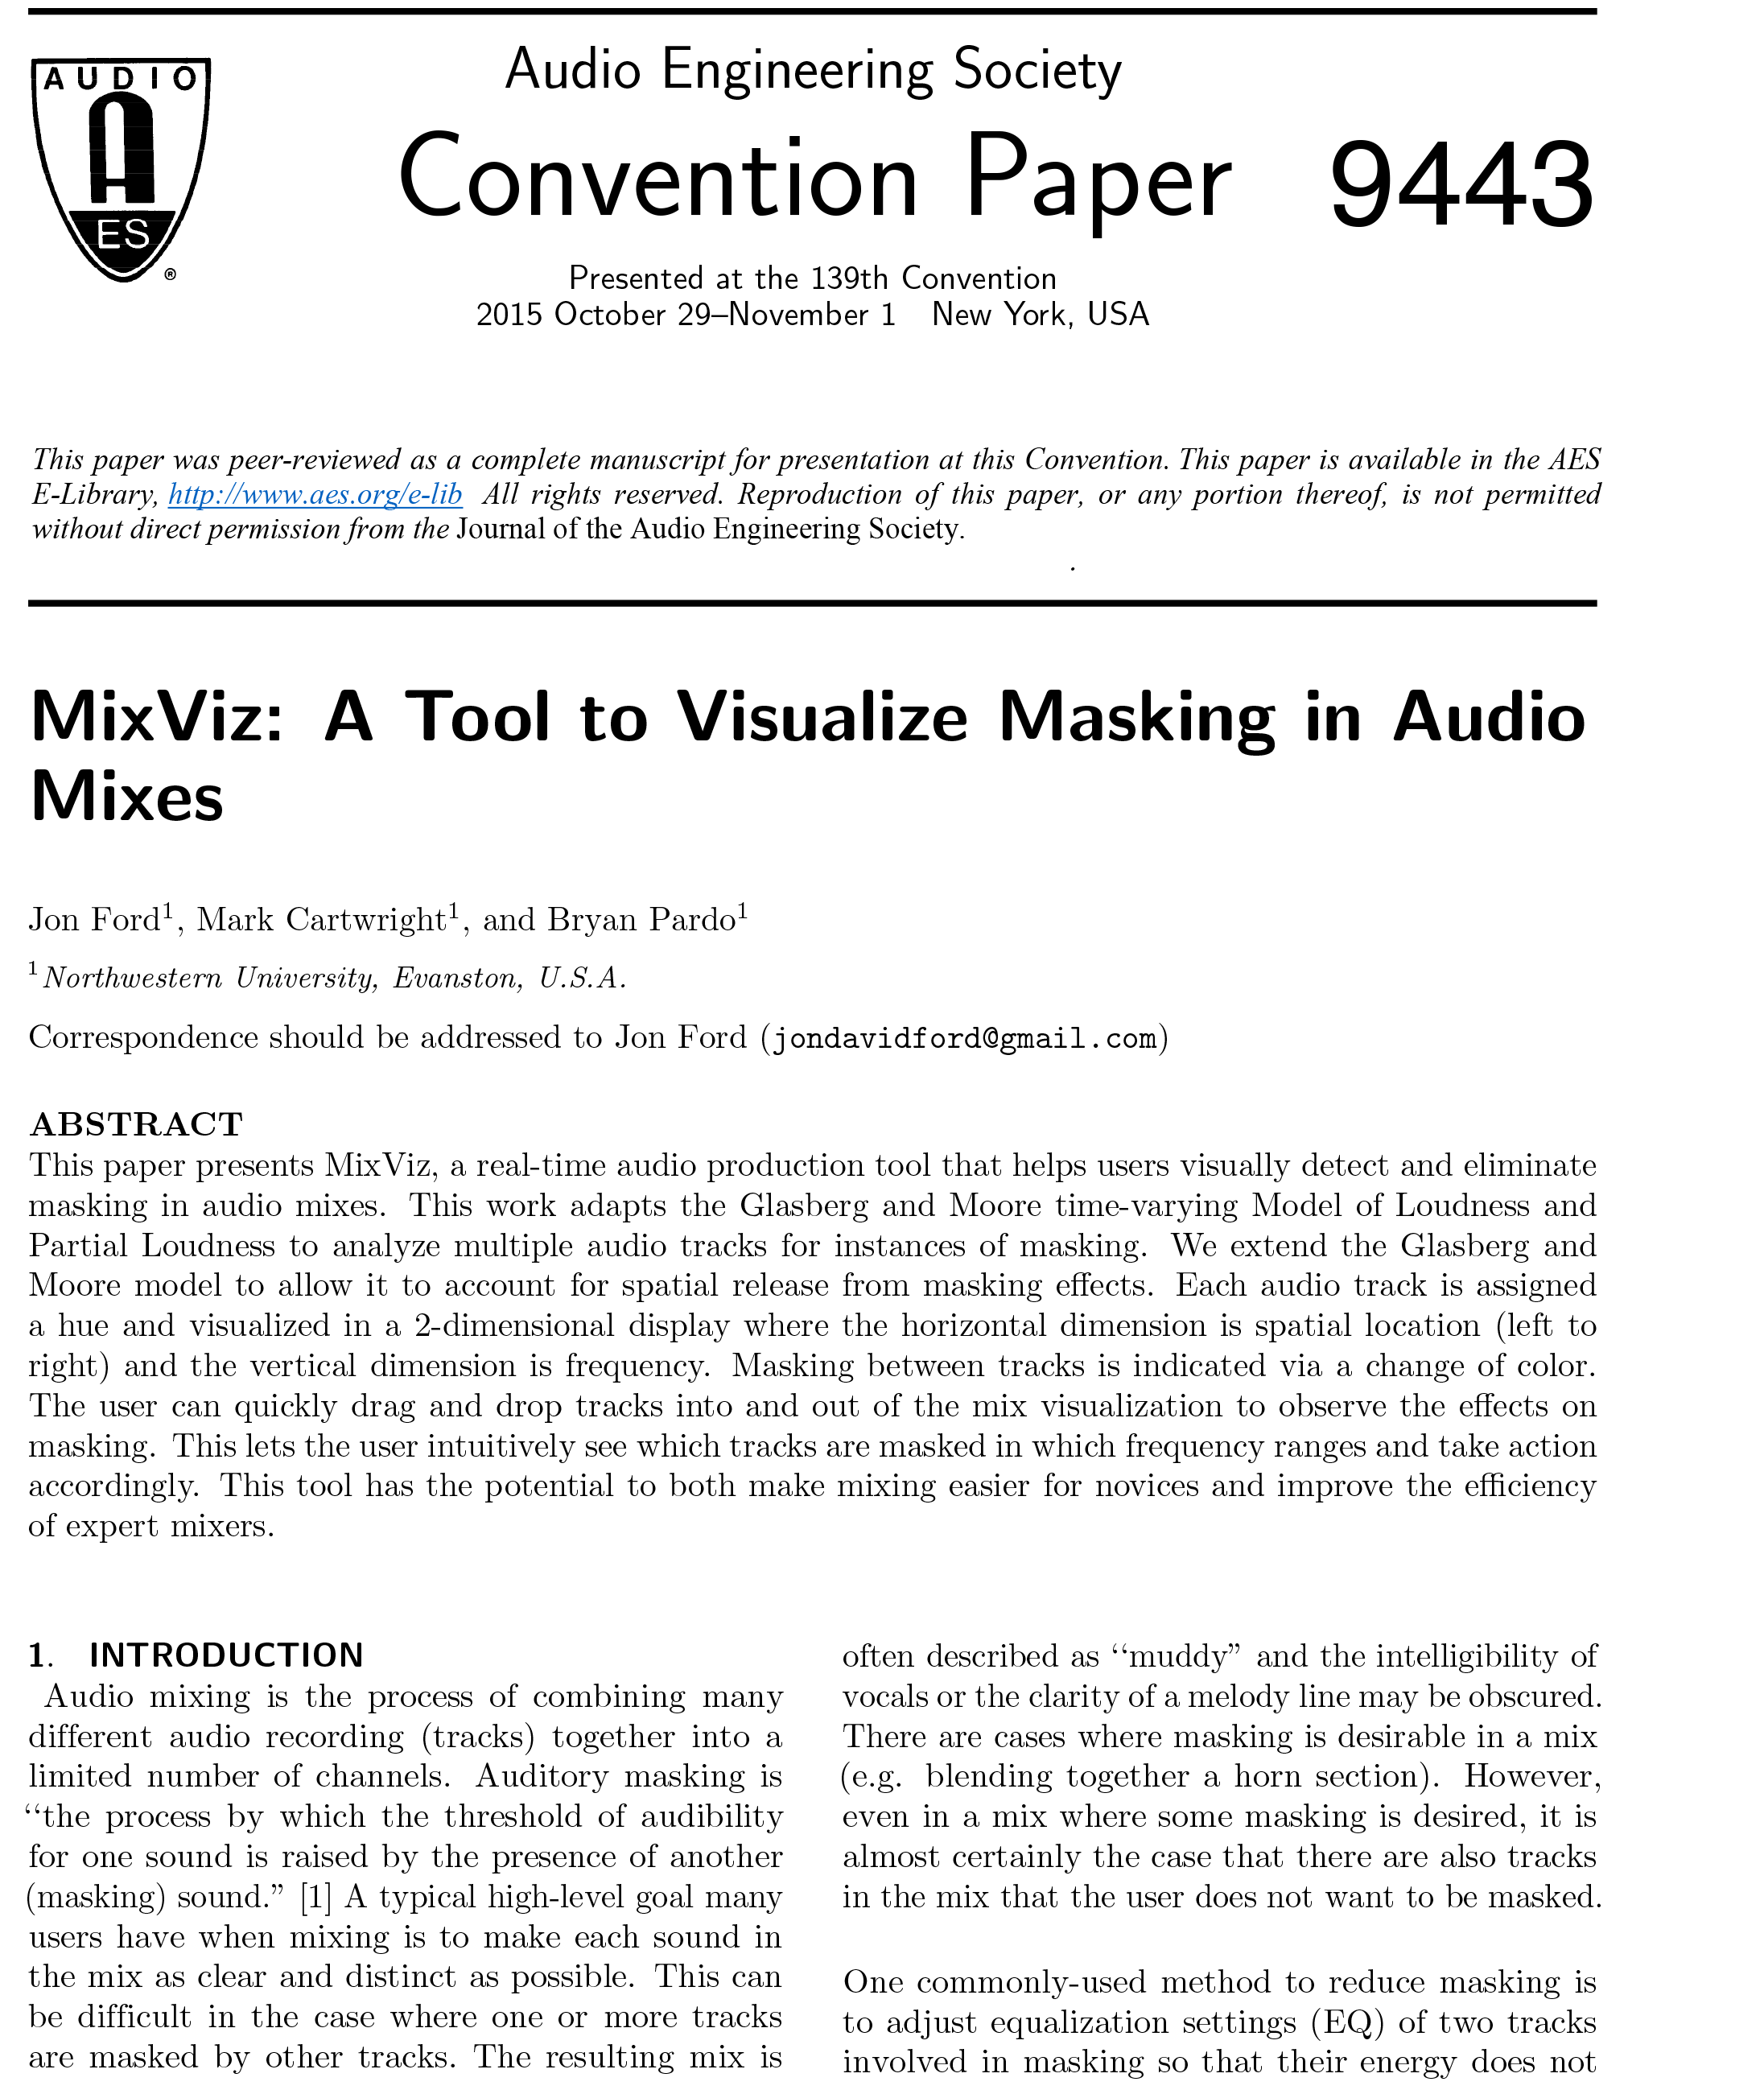 AES E-Library » MixViz: A Tool to Visualize Masking in Audio